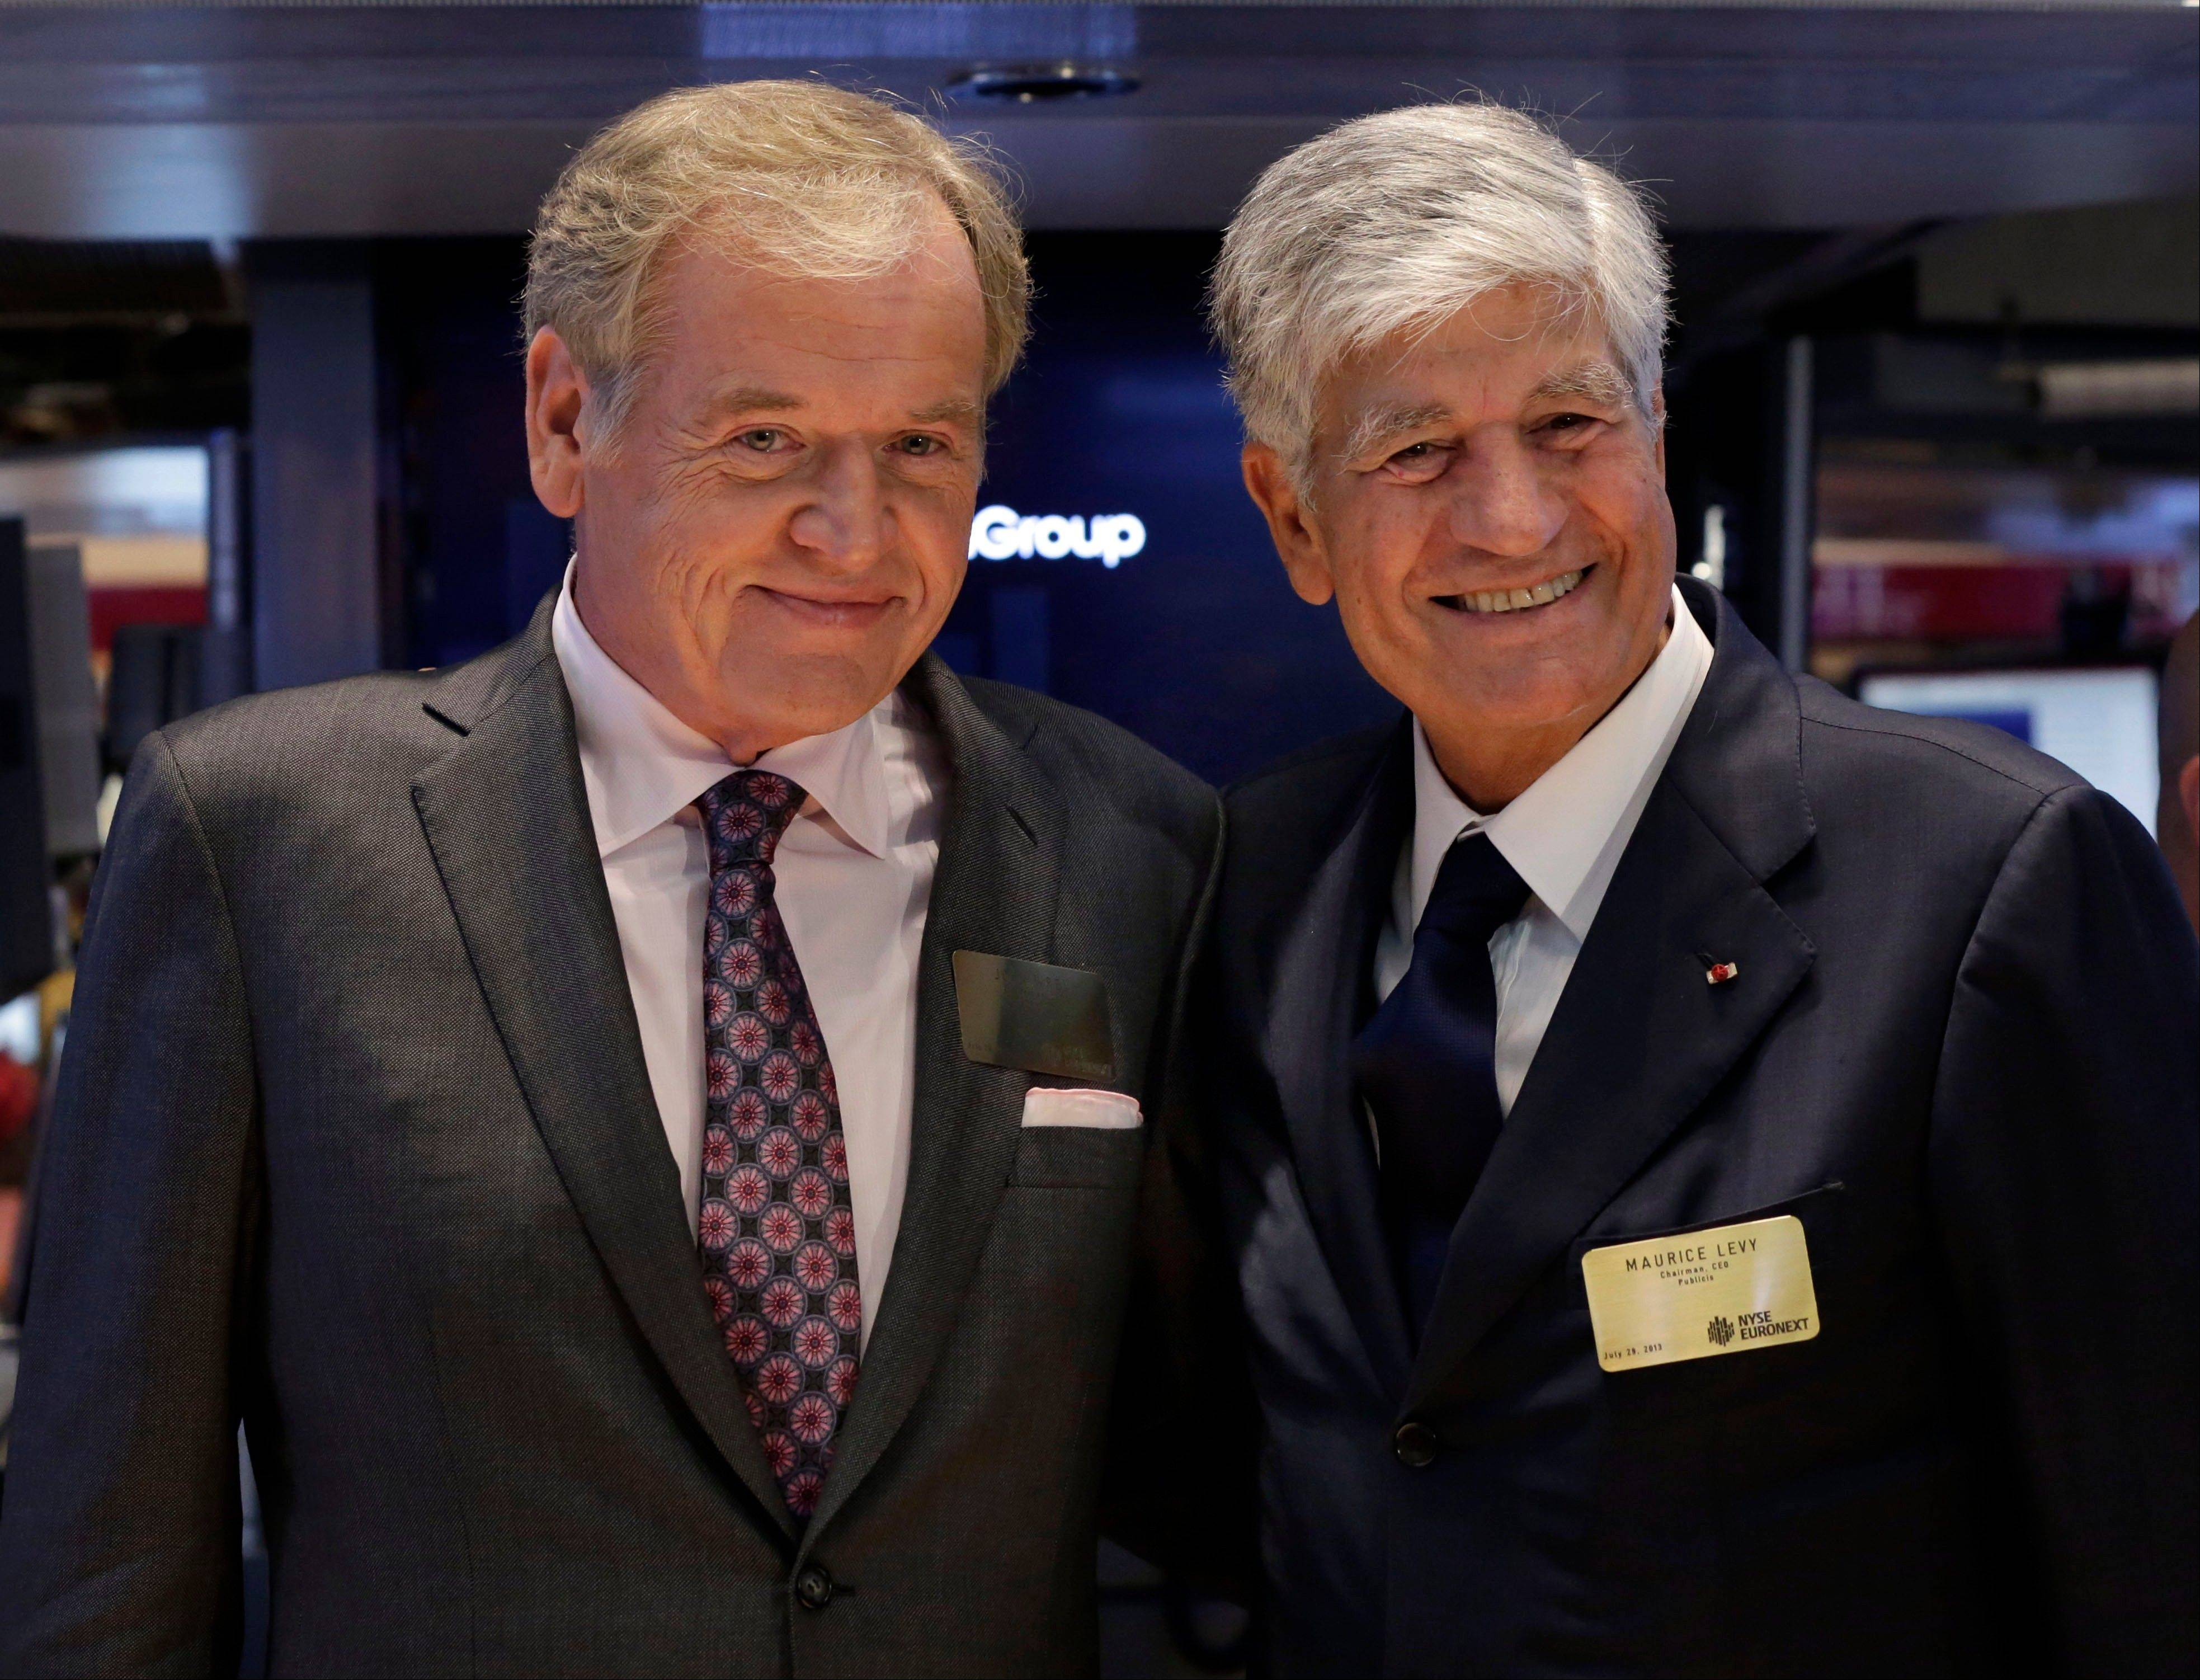 Omnicom Group President and CEO John Wren, left, and Publicis Groupe Chairman and CEO Maurice Levy met on the floor of the New York Stock Exchange Monday. Omnicom Group Inc. and Publicis Groupe SA are merging to create the world�s largest advertising firm, one worth more than $35 billion.